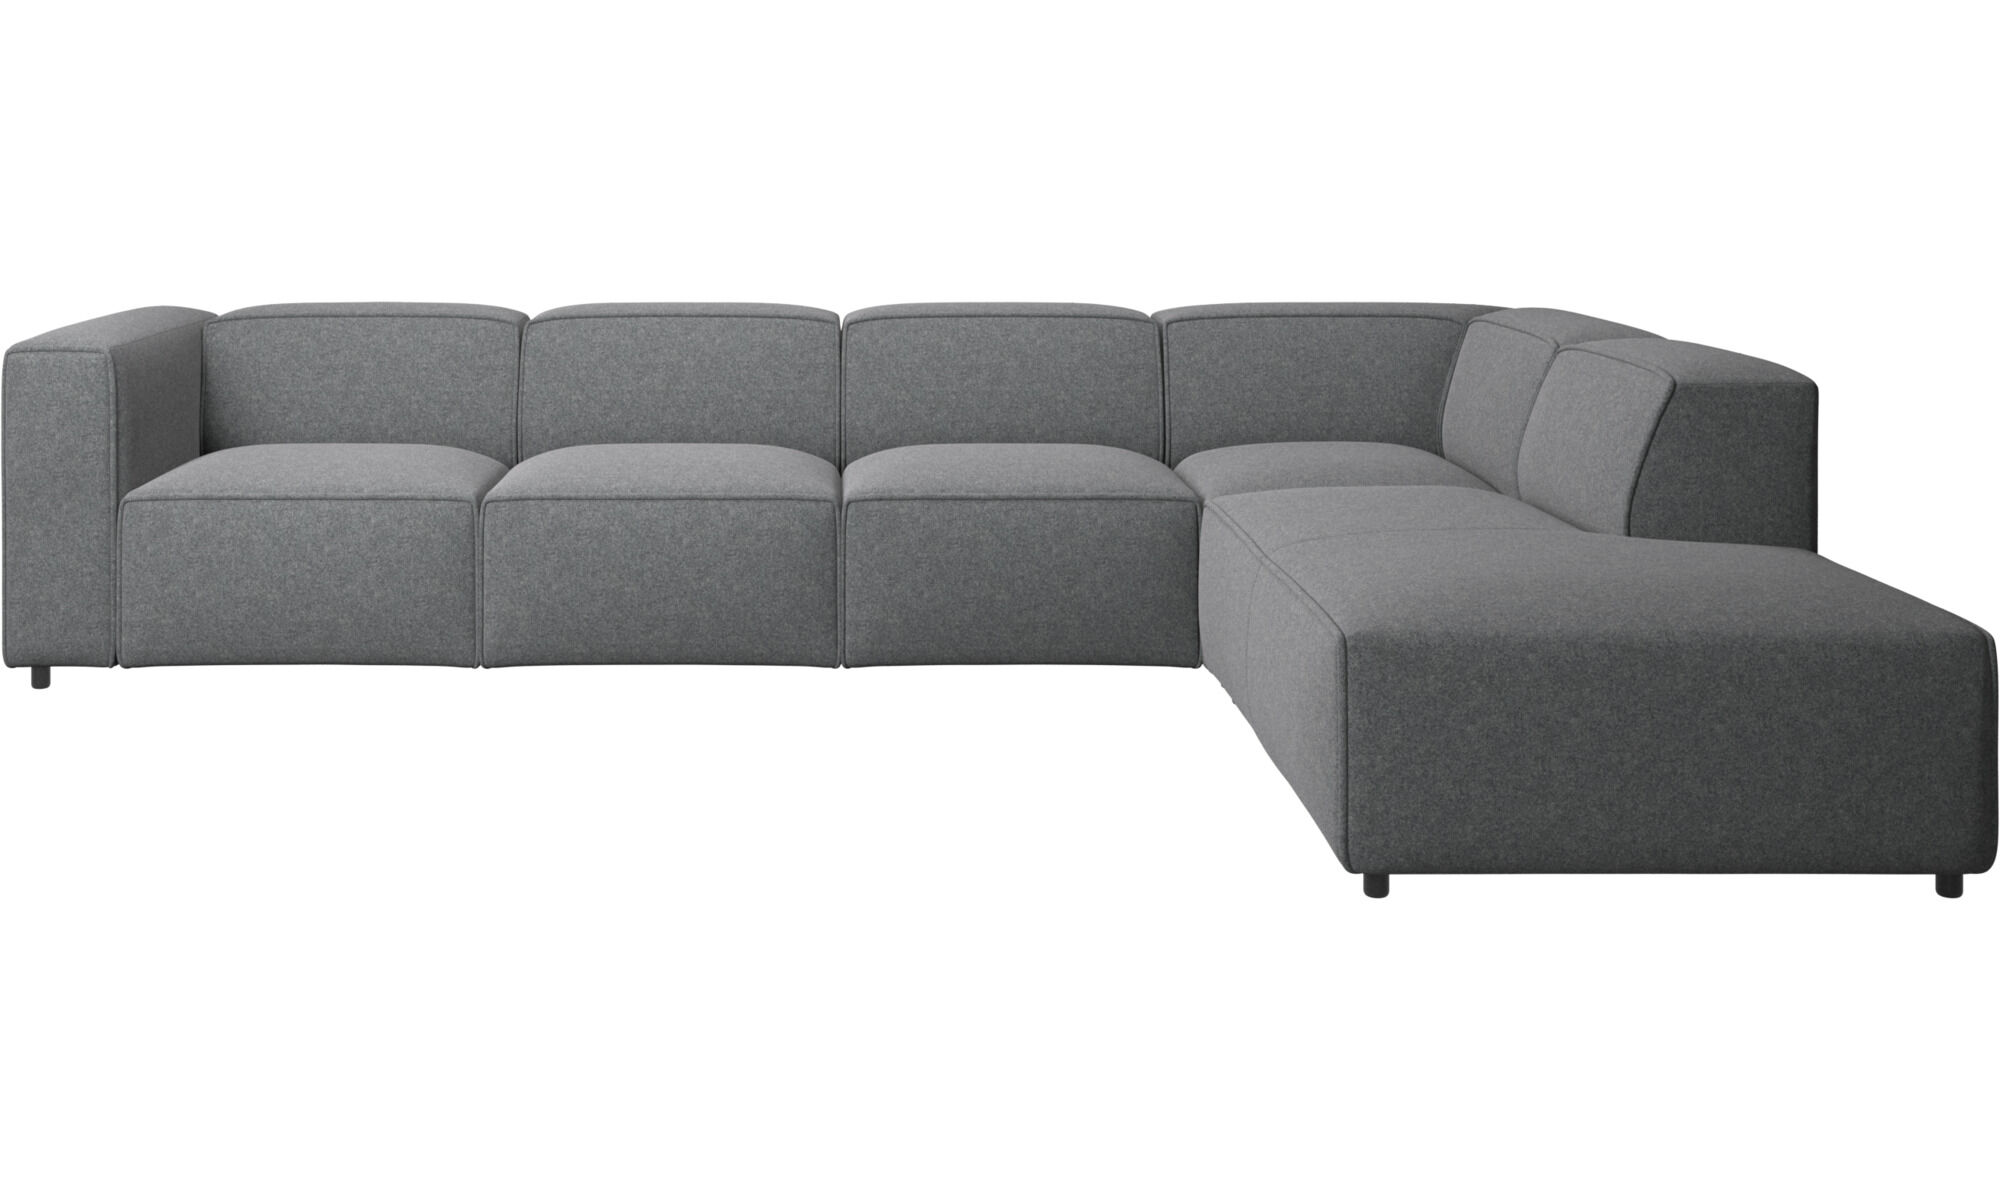 Modern Modular Sofas Contemporary Design From Boconcept